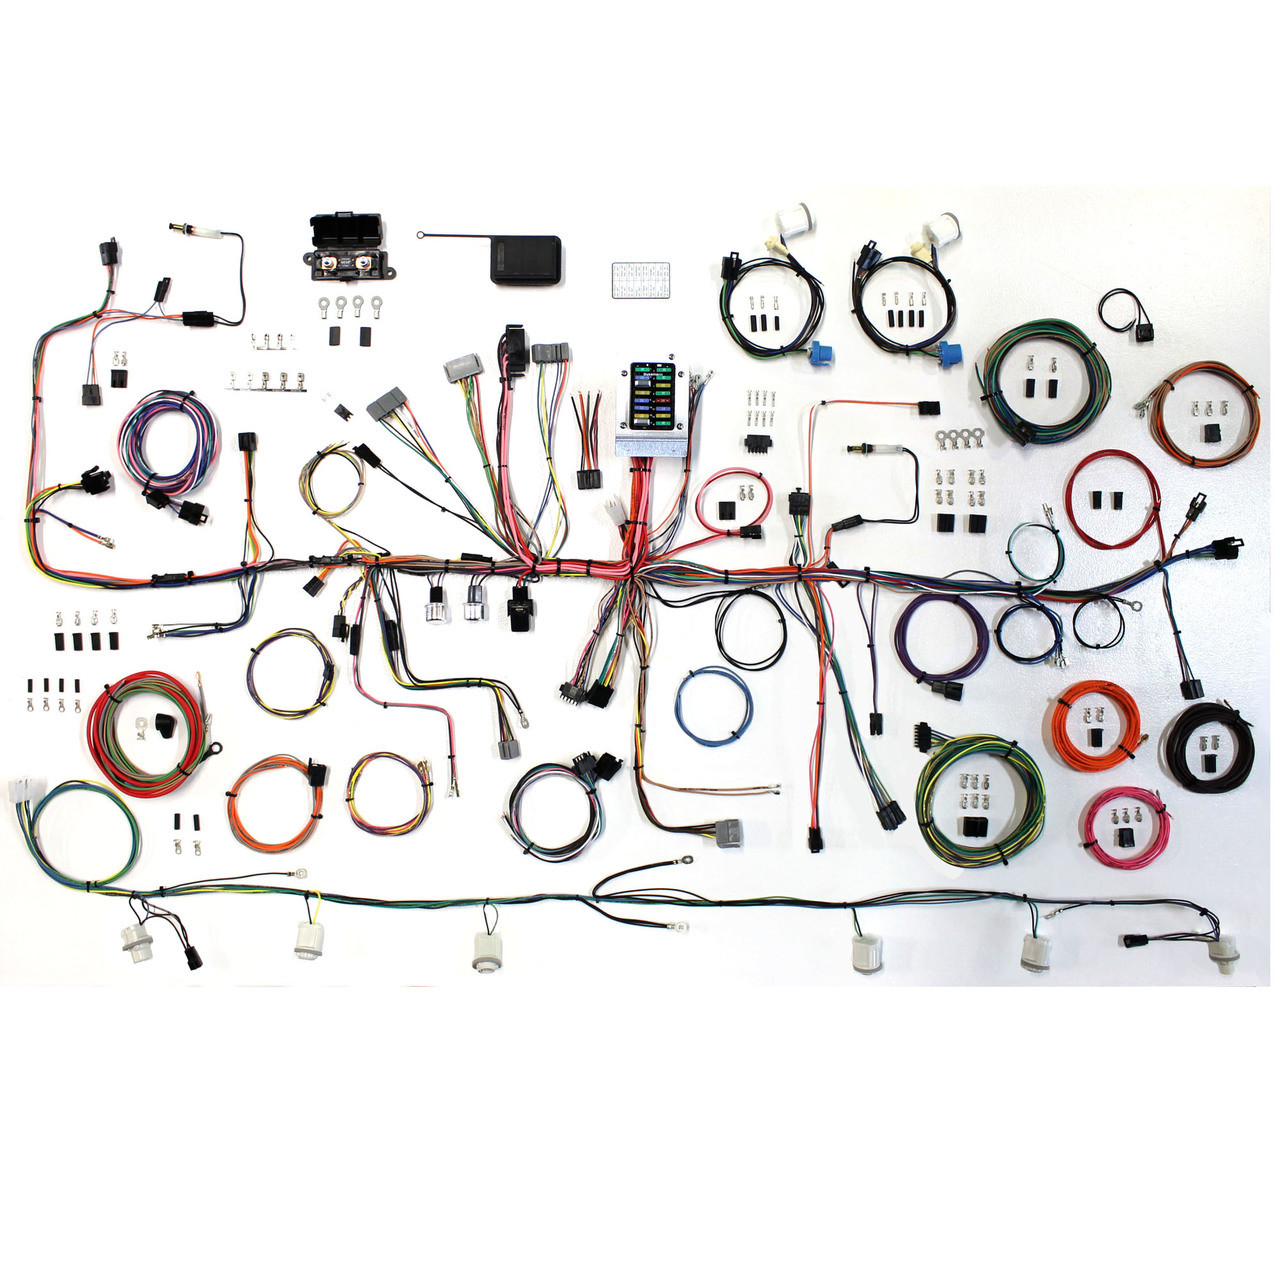 medium resolution of american autowire 1987 1989 ford mustang fox body classic update complete wiring kit